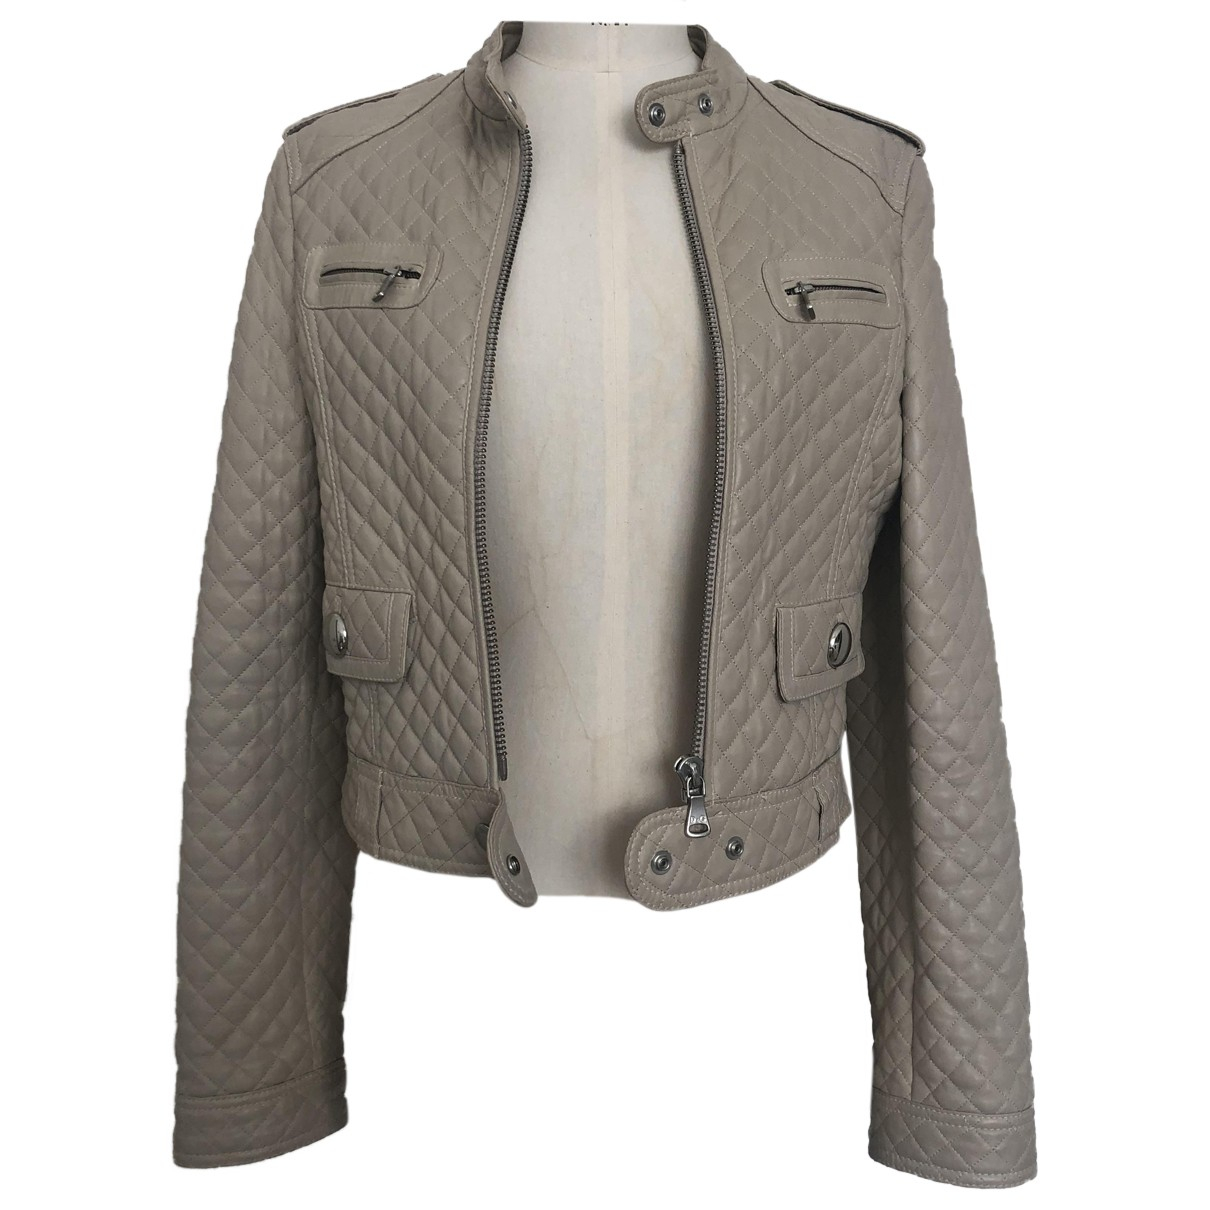 D&g N Beige Leather Leather jacket for Women 44 IT